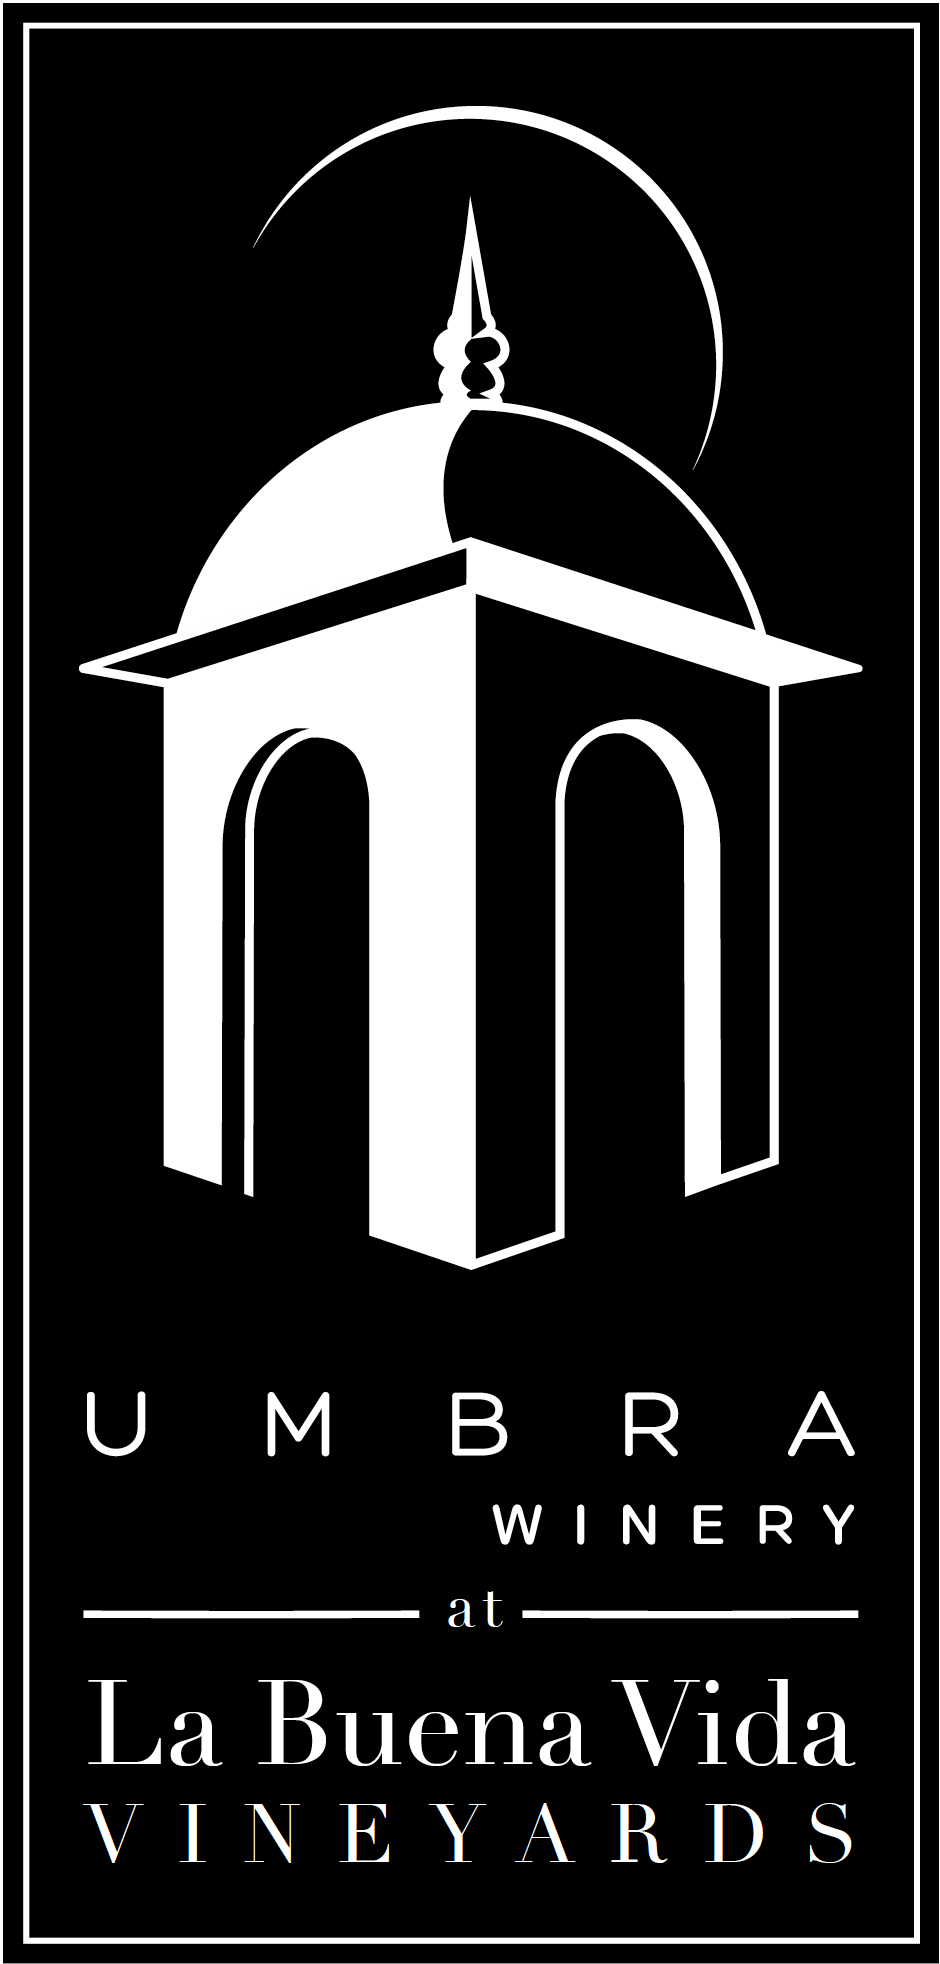 Umbra Winery at La Buena Vida Vineyards Venues